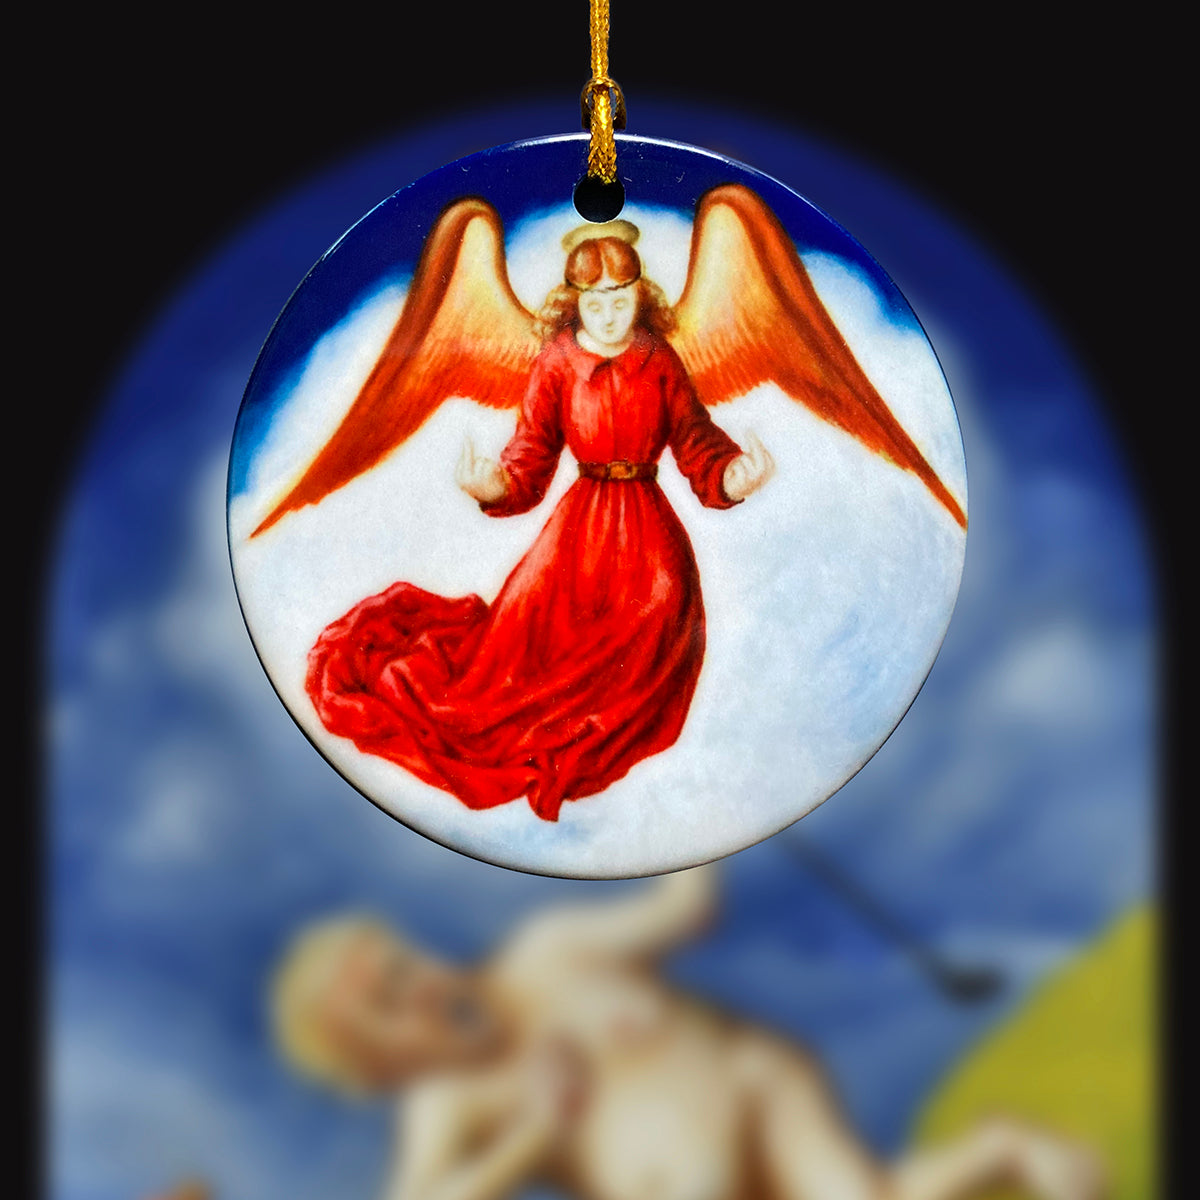 FLOTUS Angel Bird Ornament